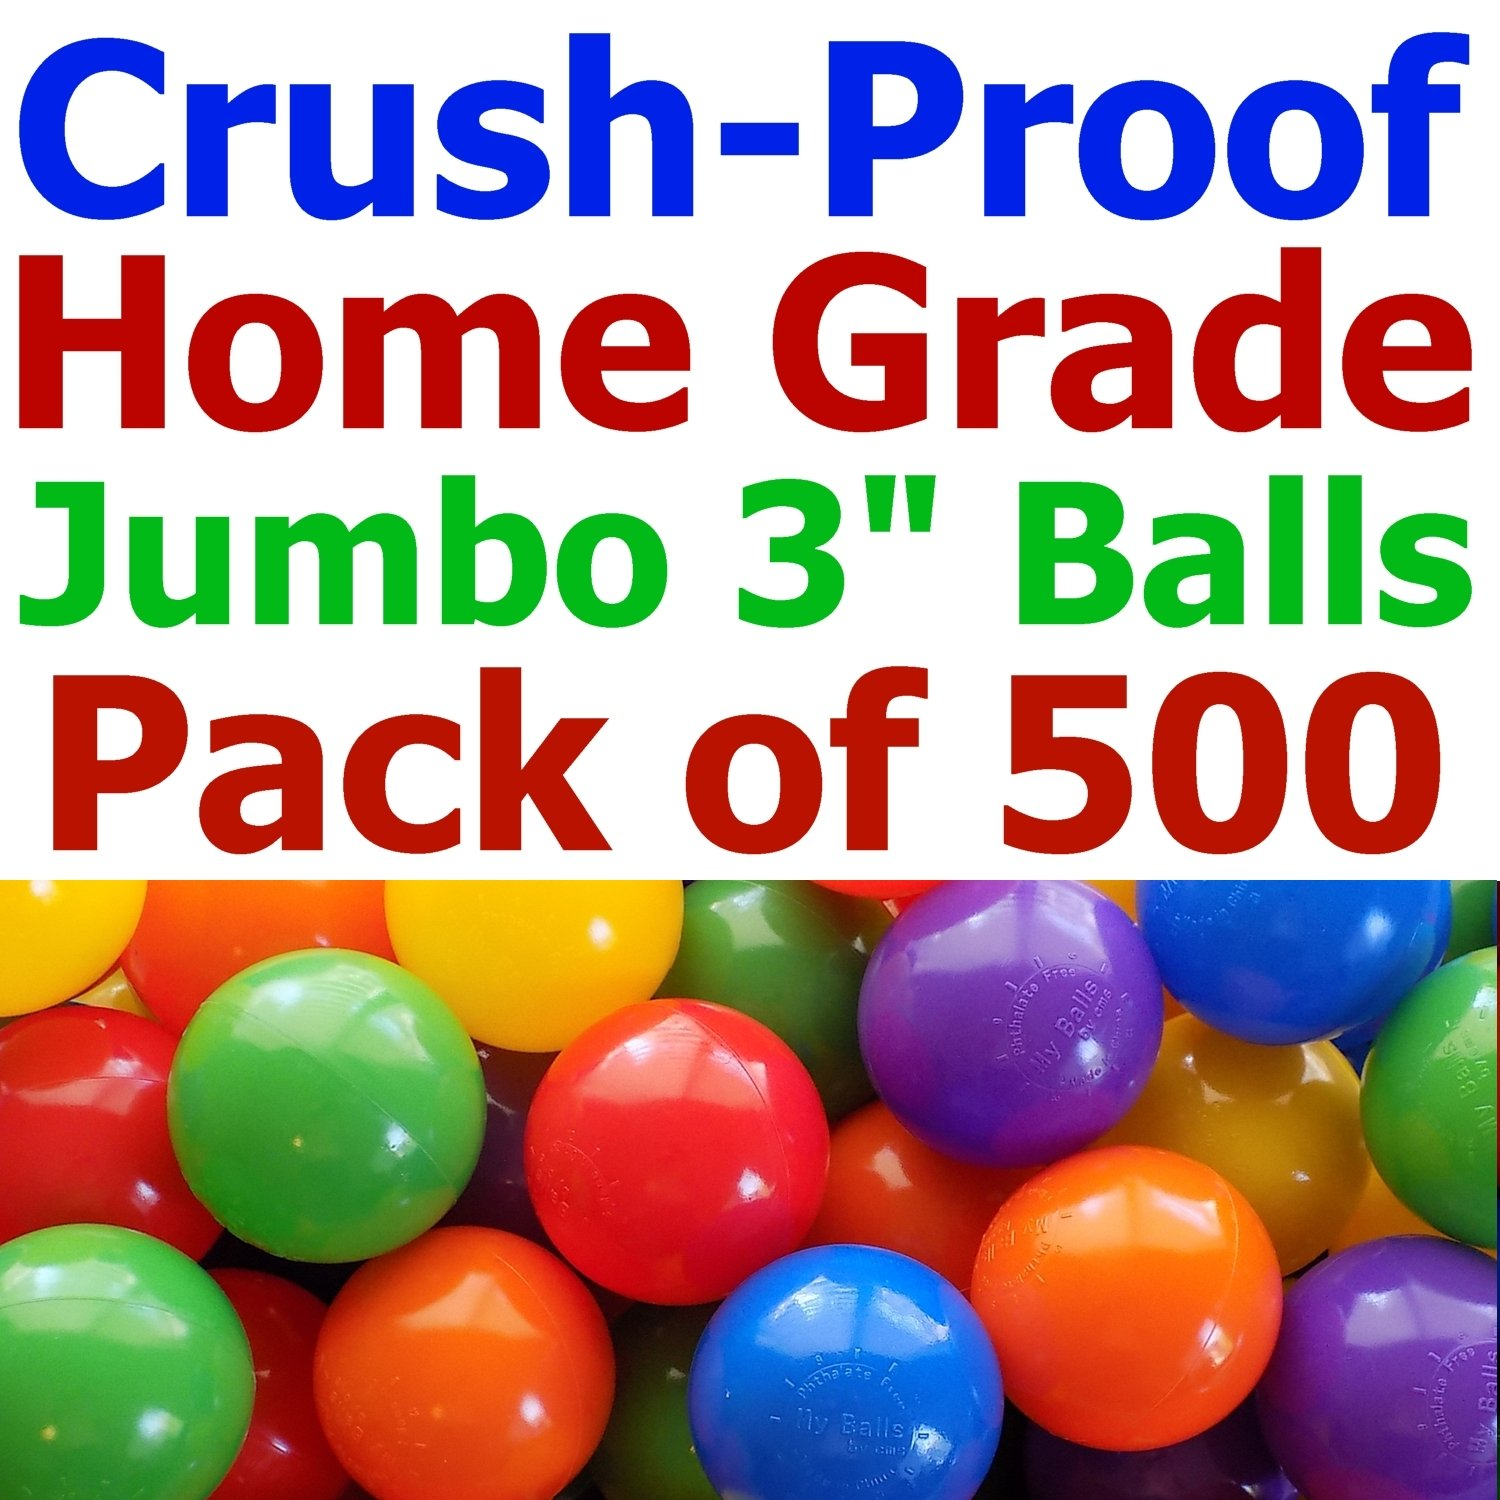 My Balls Pack of 500 Jumbo 3'' Standard Home Grade Ball Pit Balls 5 Bright Colors; Crush-Proof; Air-Filled; Phthalate Free; BPA Free; non-Toxic; non-PVC; non-Recycled Plastic